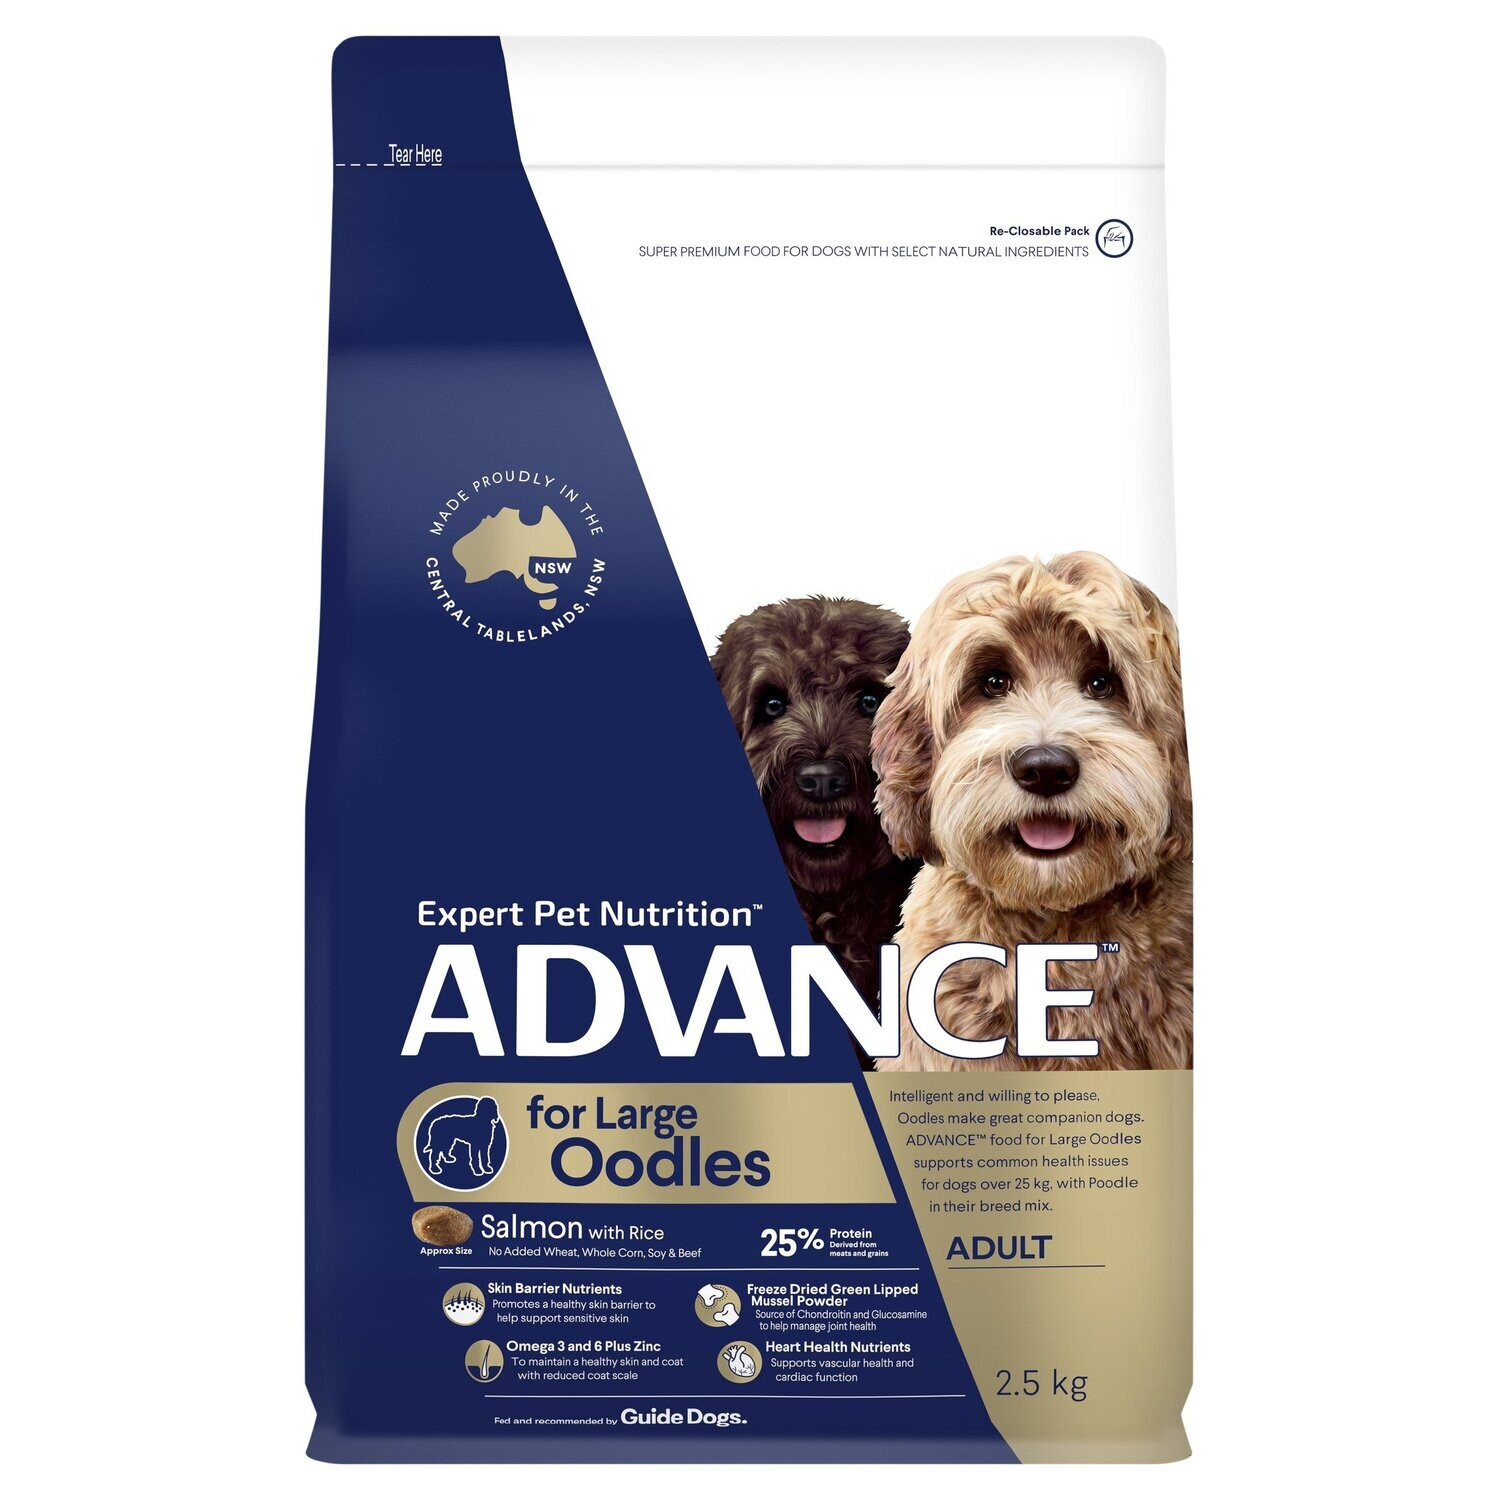 ADVANCE™ Oodles Large Breed Adult Salmon with Rice Dry Dog Food 2.5kg